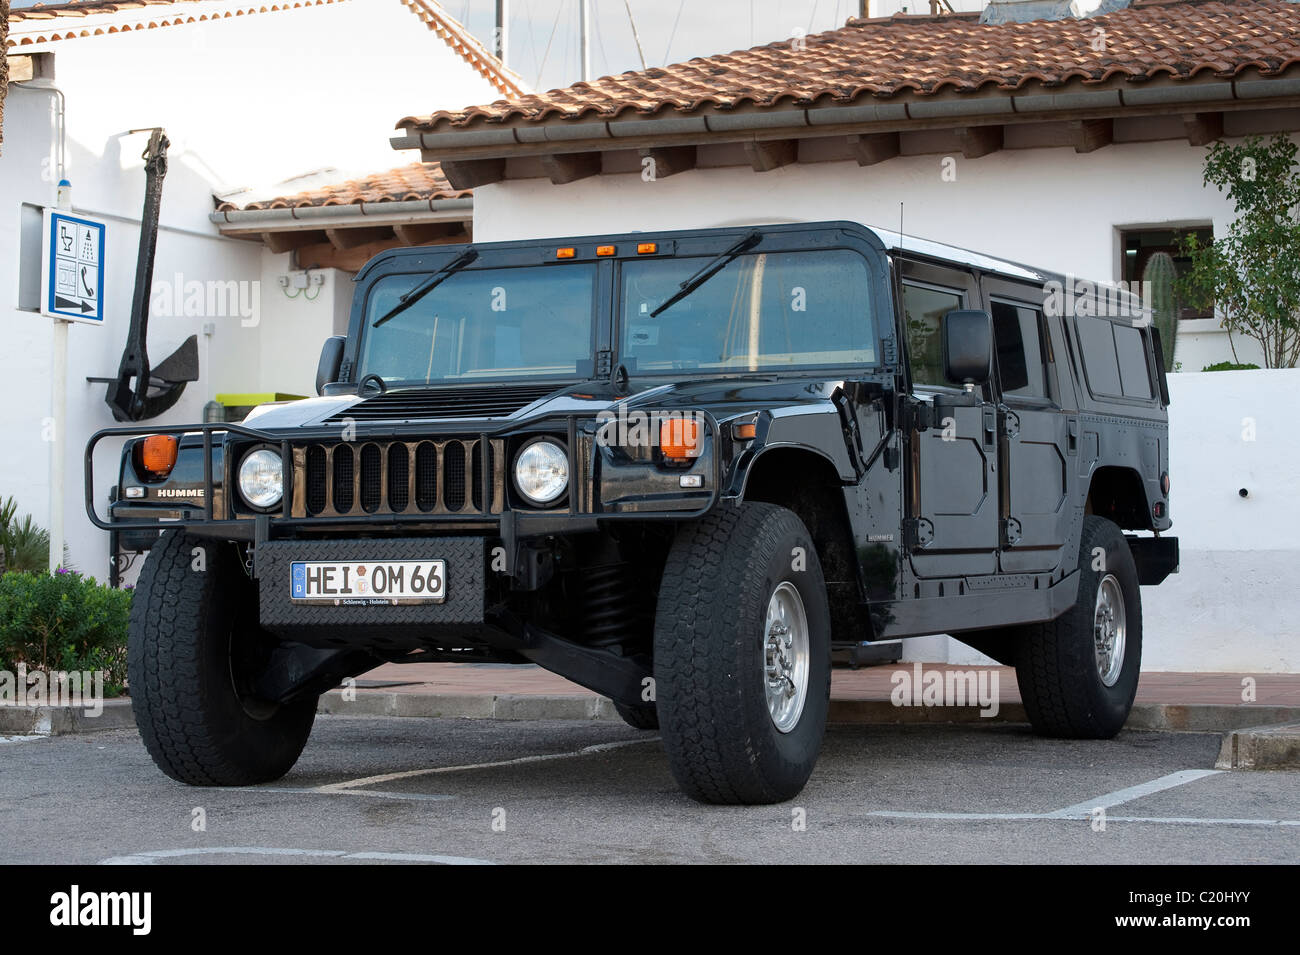 Hummer H1 civilian off road vehicle in Spain. - Stock Image